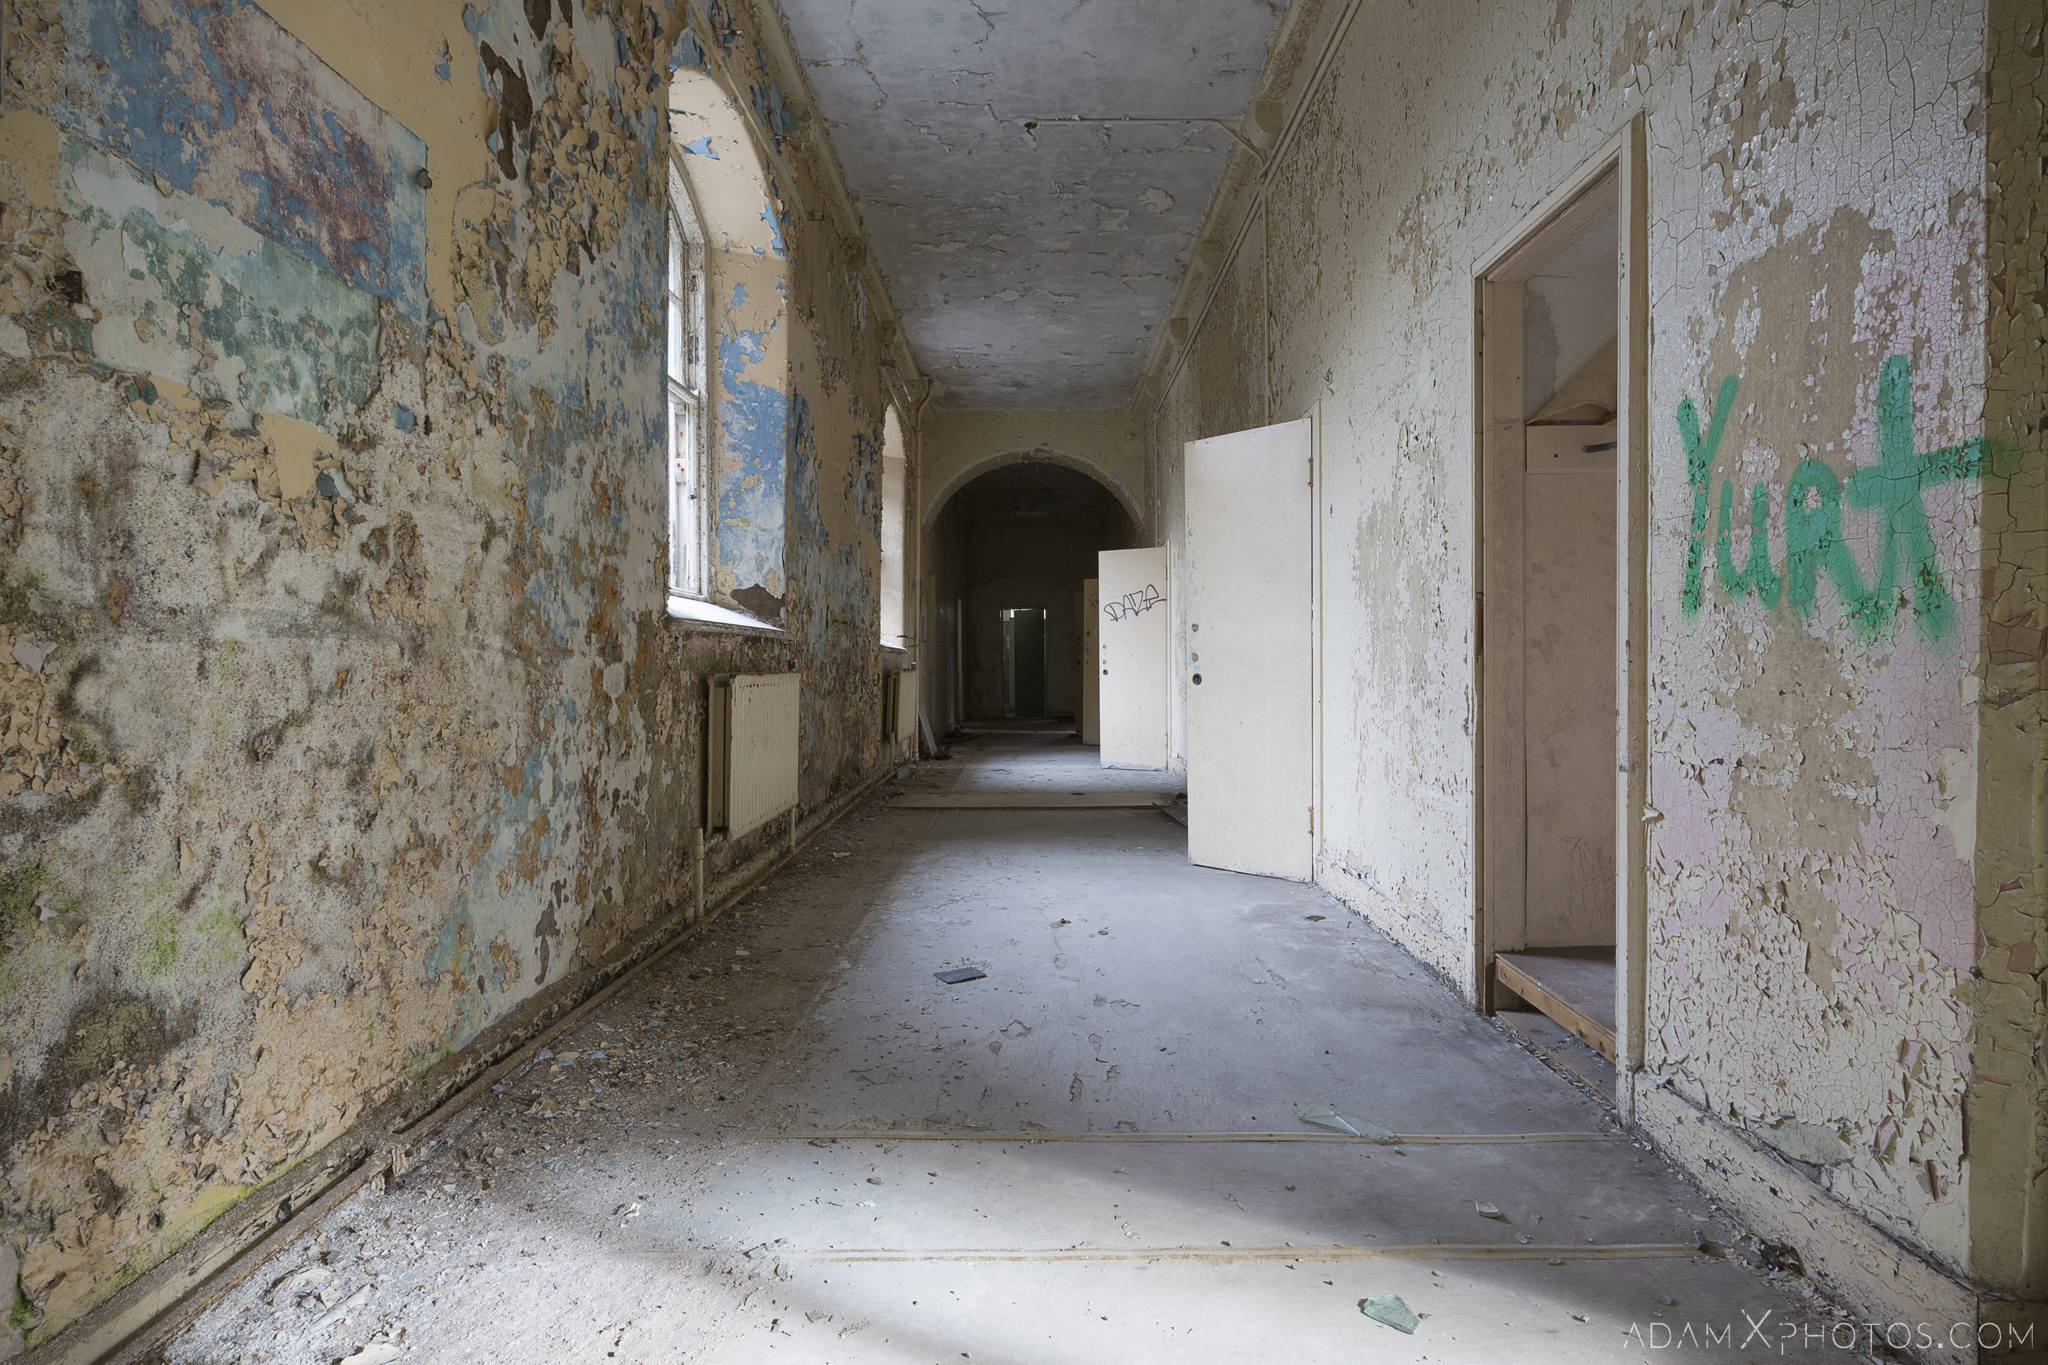 Corridor peeling paint Ennis District Lunatic Asylum Our Lady's Hospital Ennis County Clare Adam X Urbex Urban Exploration Ireland Ballinasloe Access 2017 Abandoned decay lost forgotten derelict location creepy haunting eerie